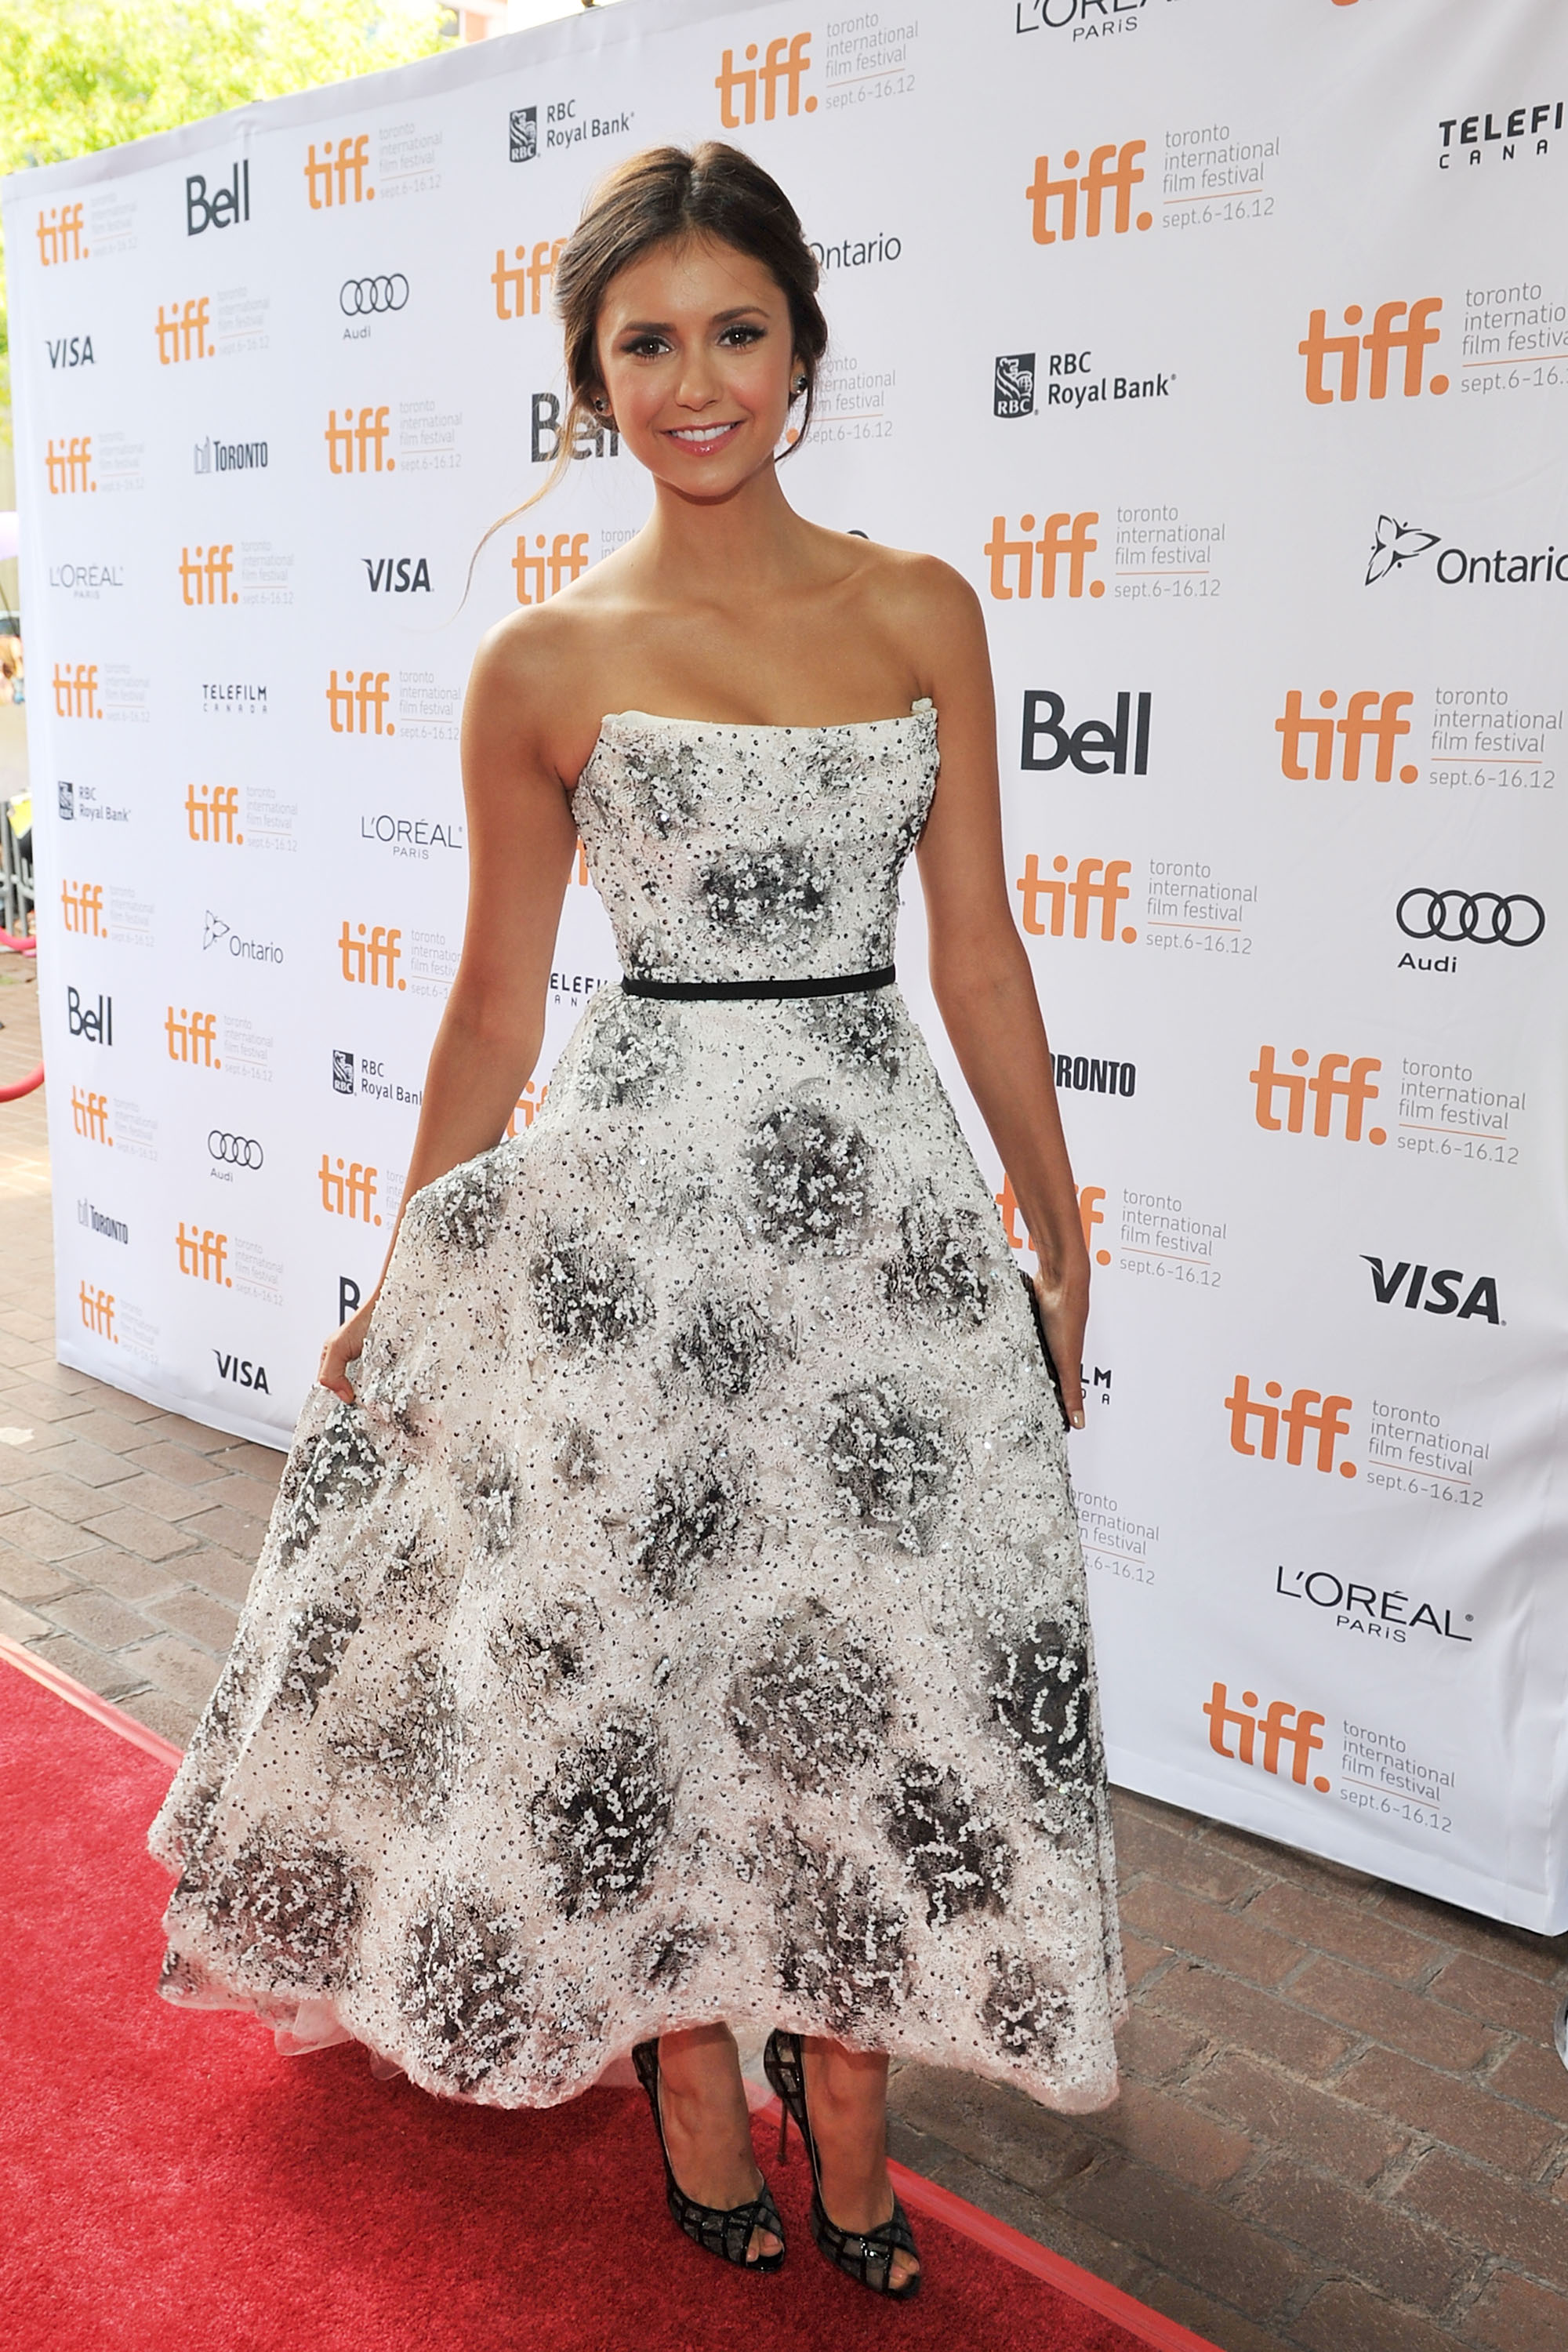 The style star showed off her ultrafeminine side in this strapless Monique Lhuillier dress at the 2012 Toronto International Film Festival.